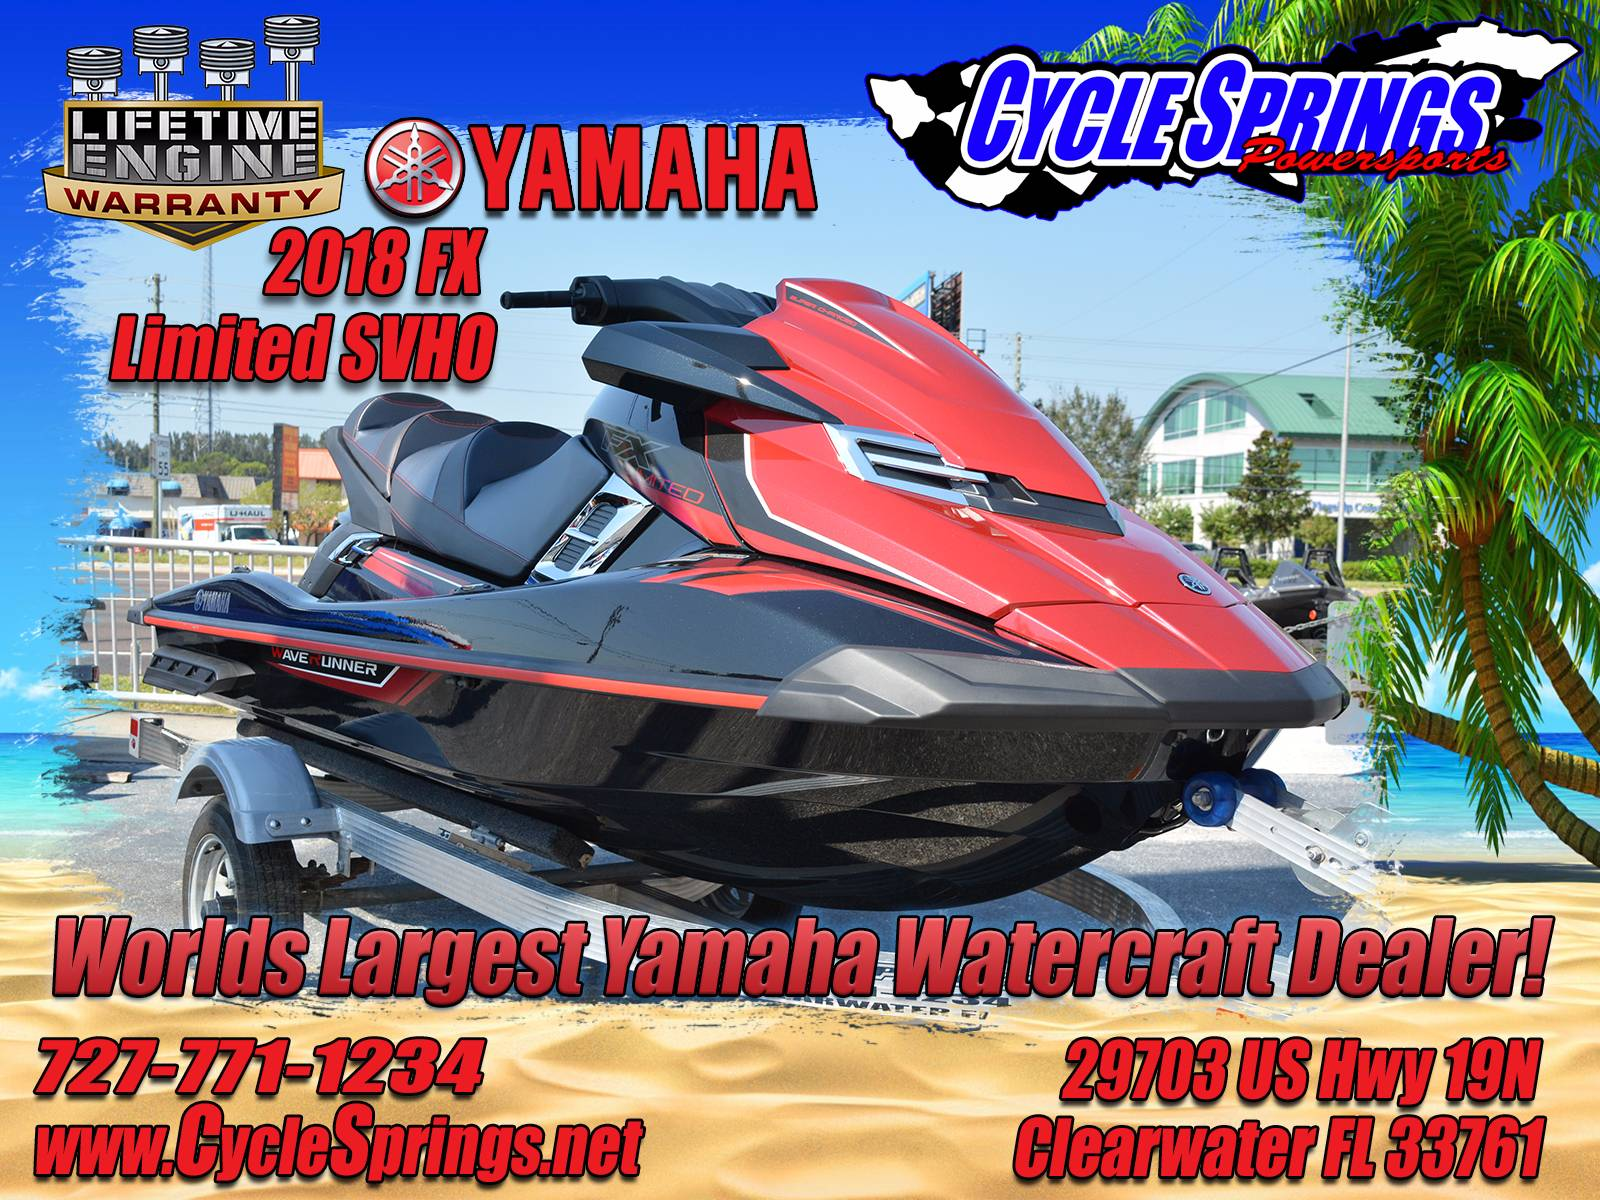 New 2018 yamaha fx limited svho watercraft in clearwater fl for Yamaha fx limited